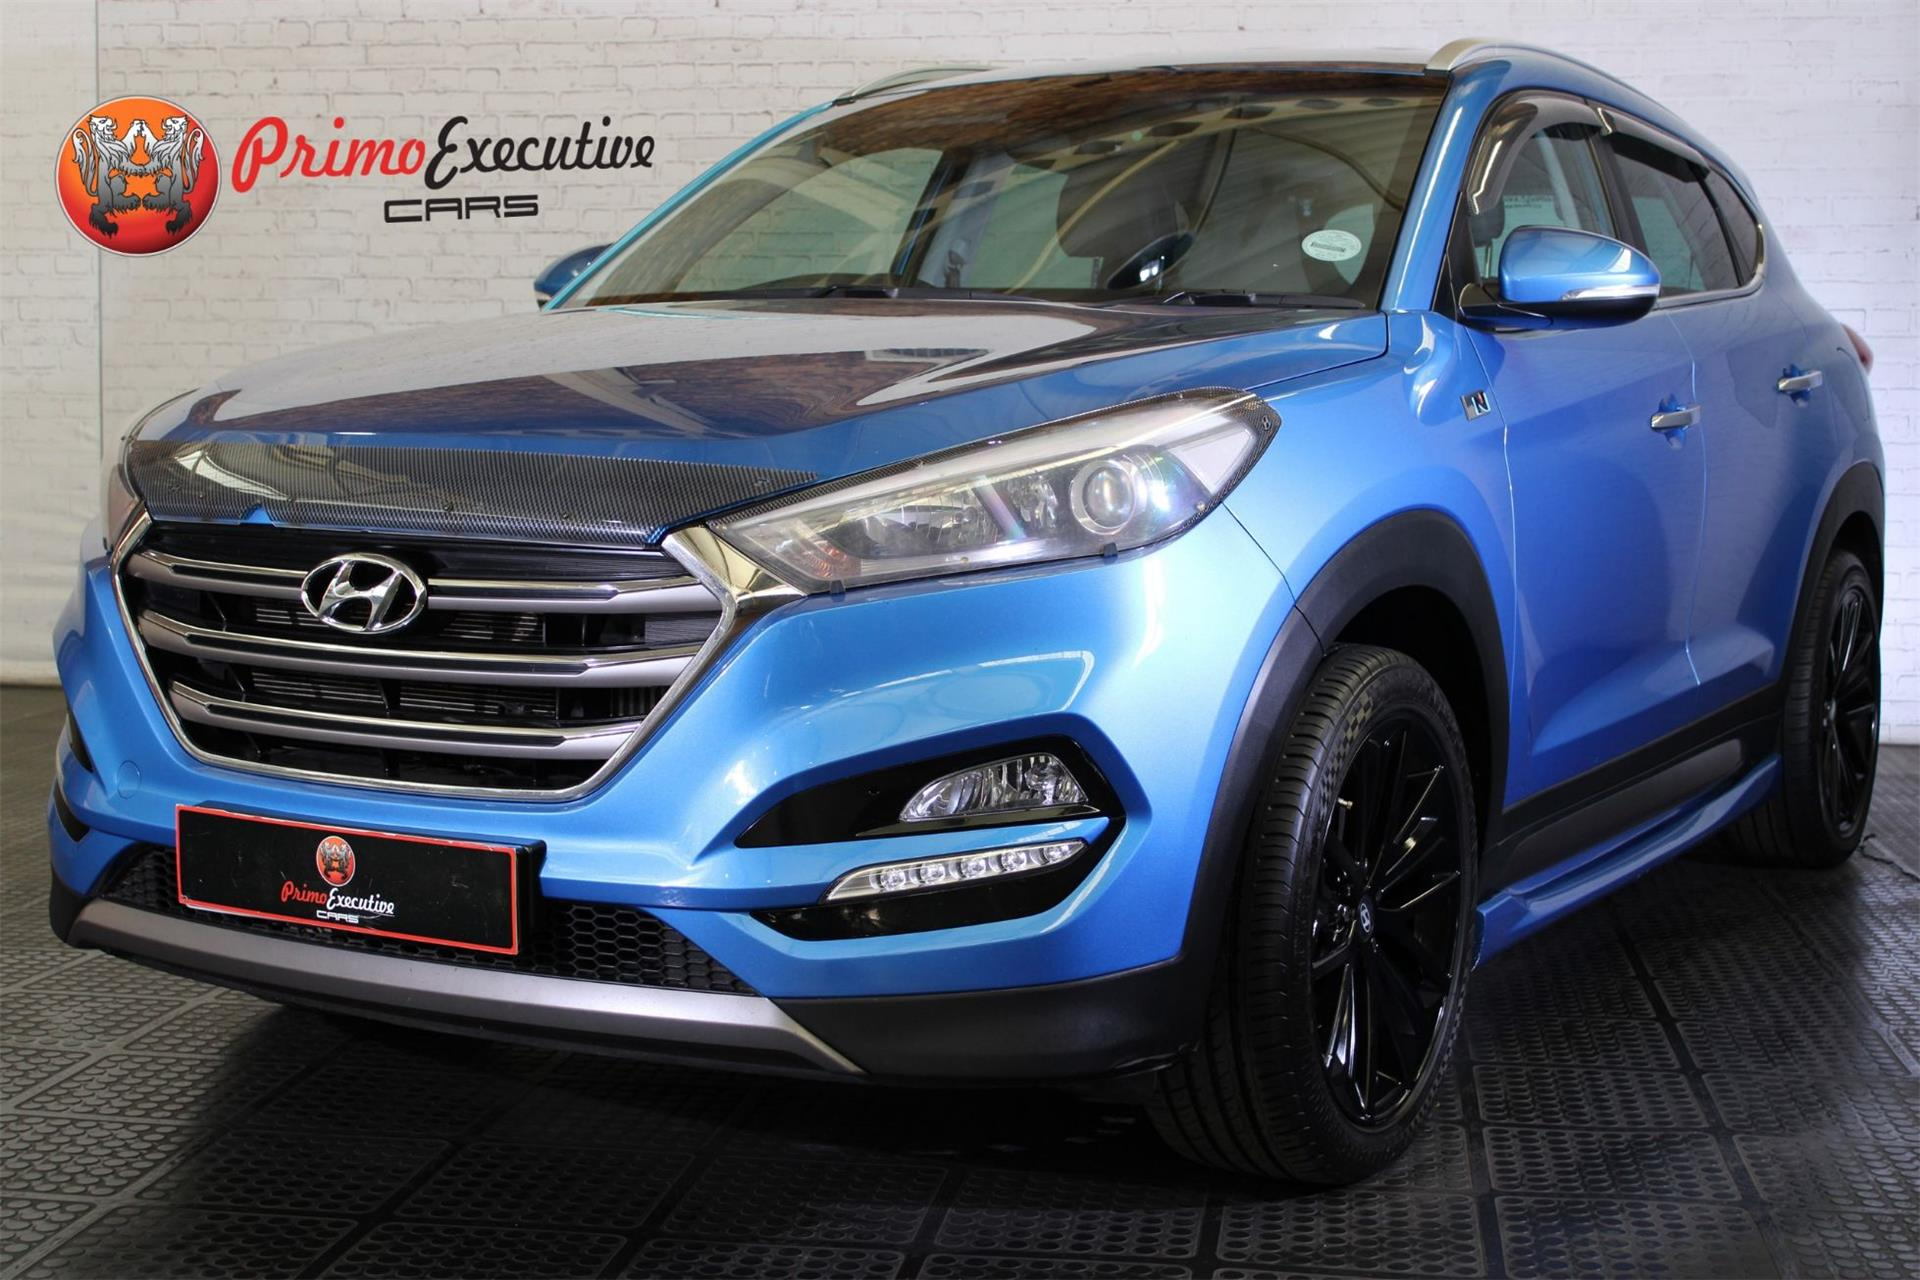 Hyundai Tucson 1.6 Turbo Executive Sport